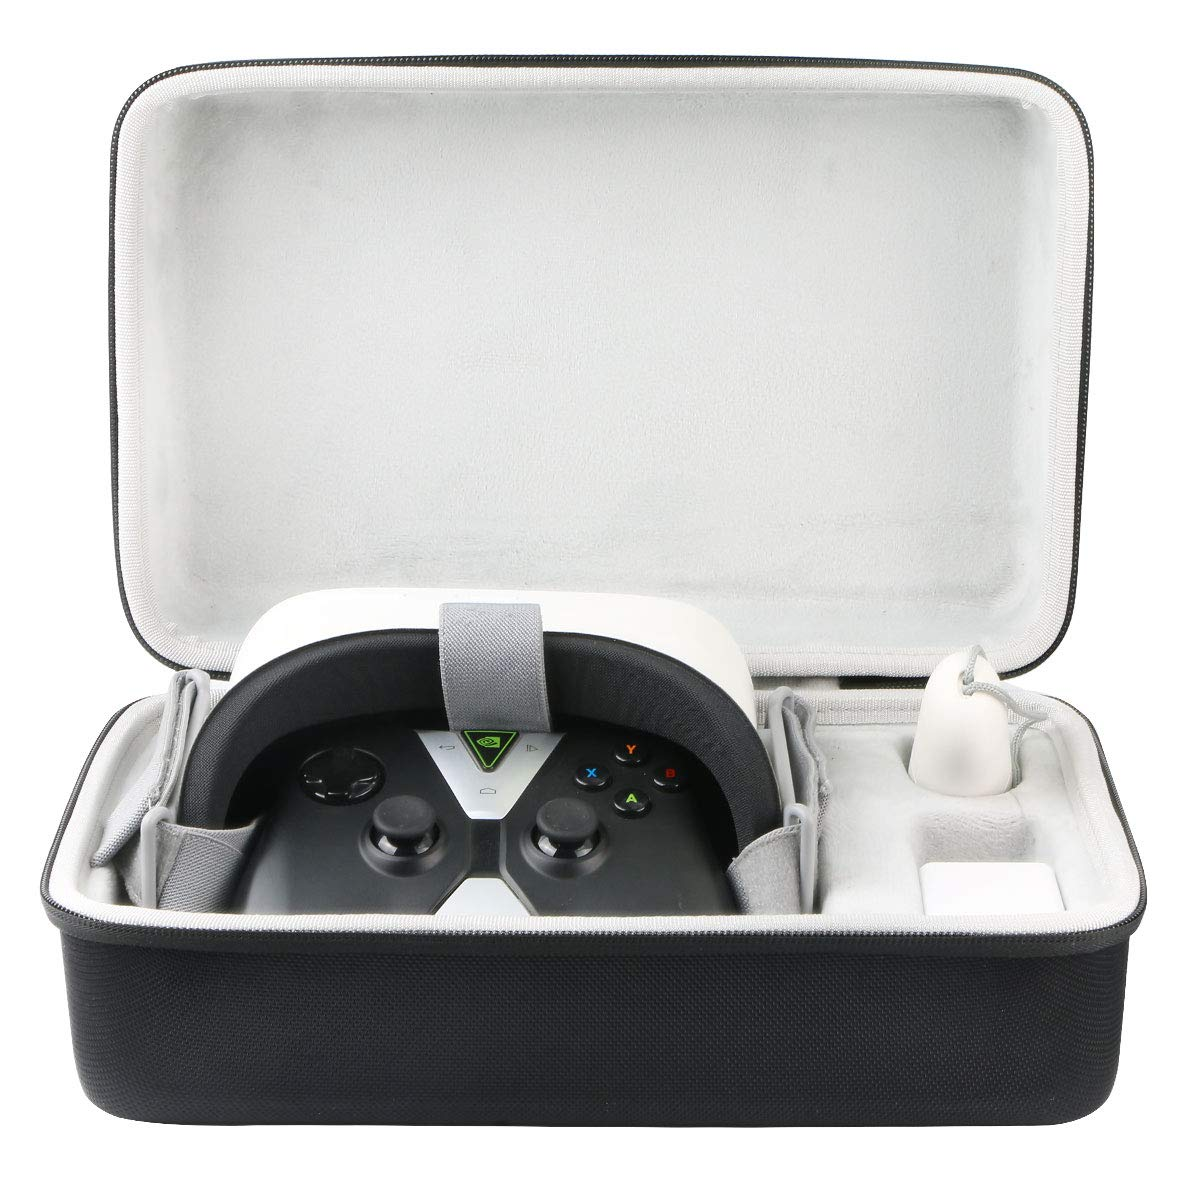 Khanka Hard Travel Case Replacement for Oculus Go Standalone Virtual Reality VR Headset (Fits Gaming Remote Controller)